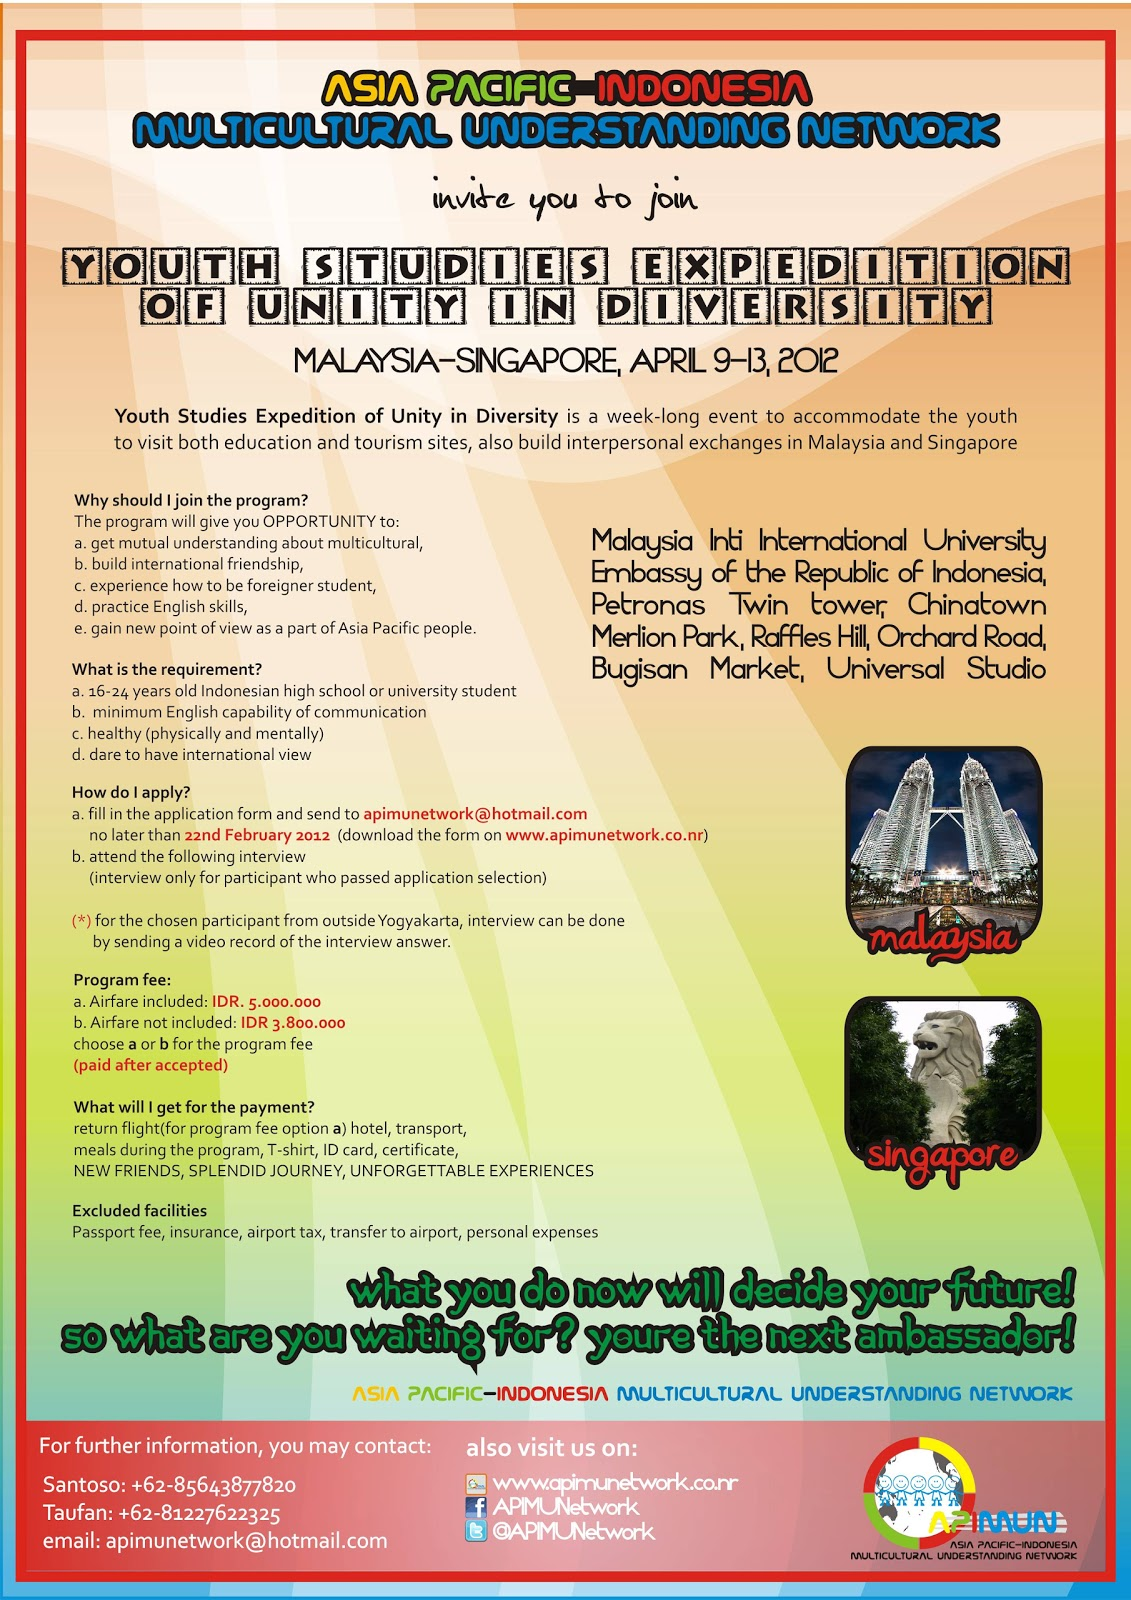 cific-Indonesia Multicultural Understanding Network | apimun org